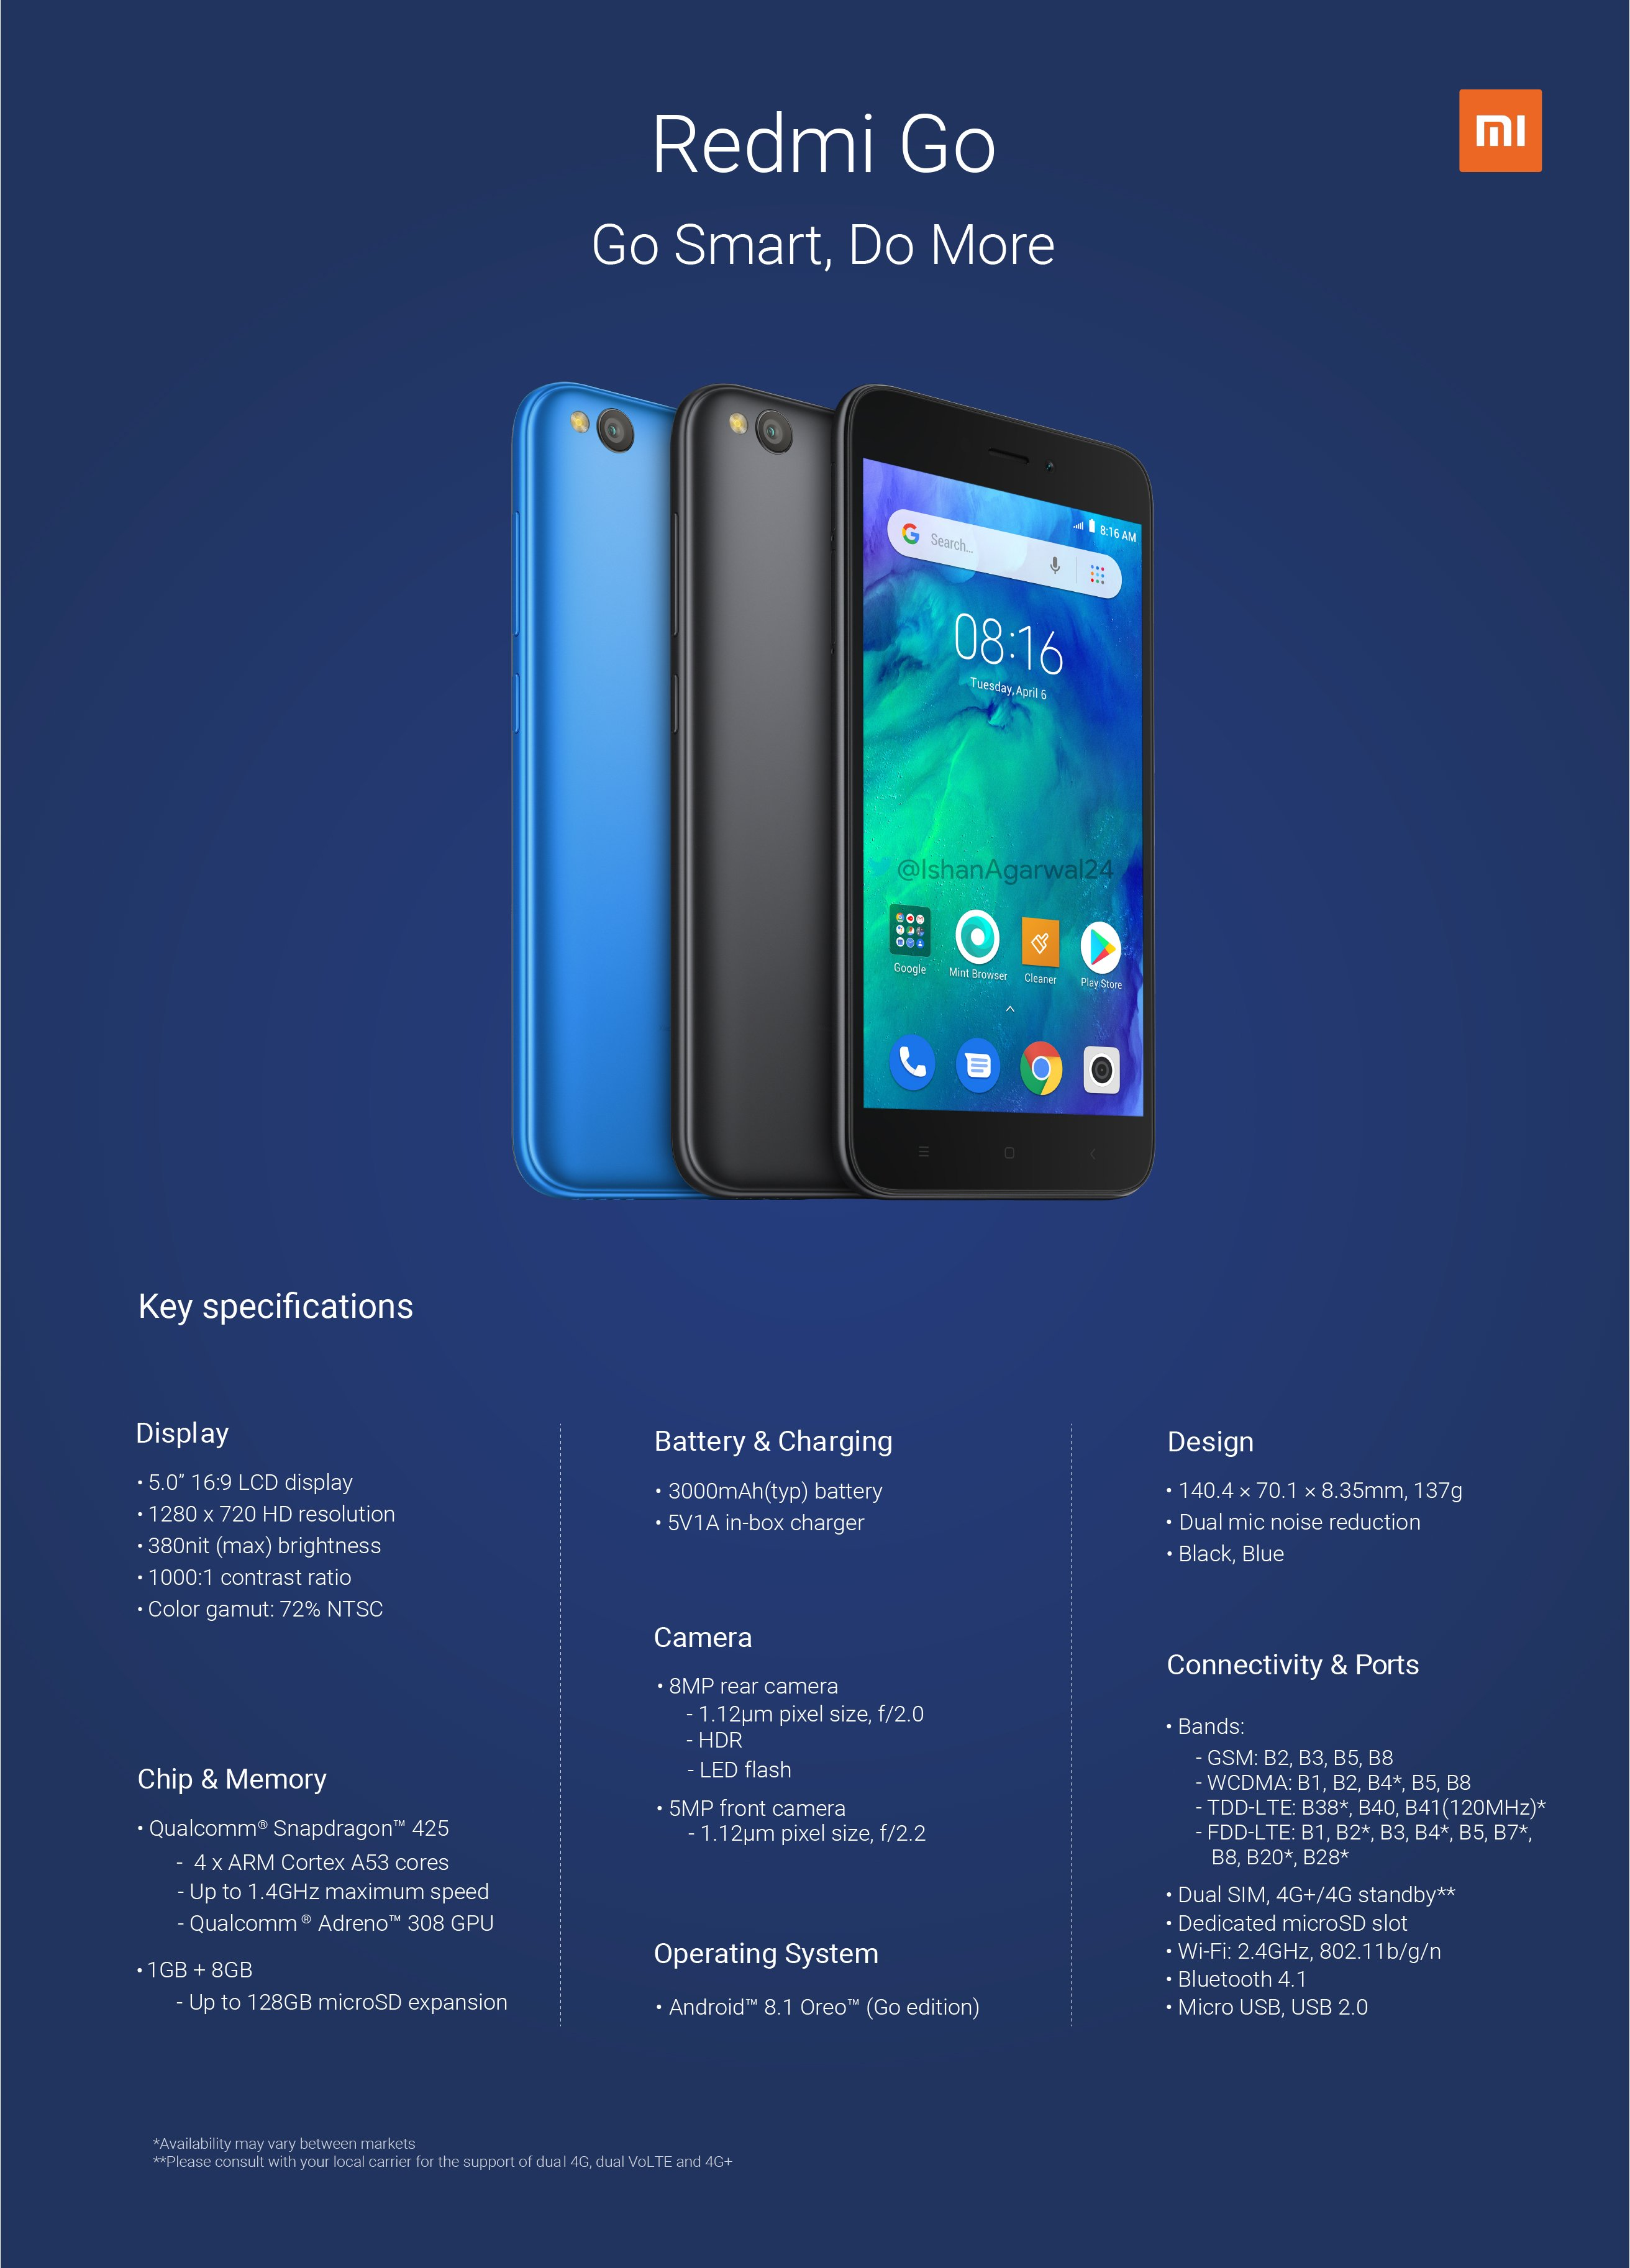 Redmi Go Design and Specifications